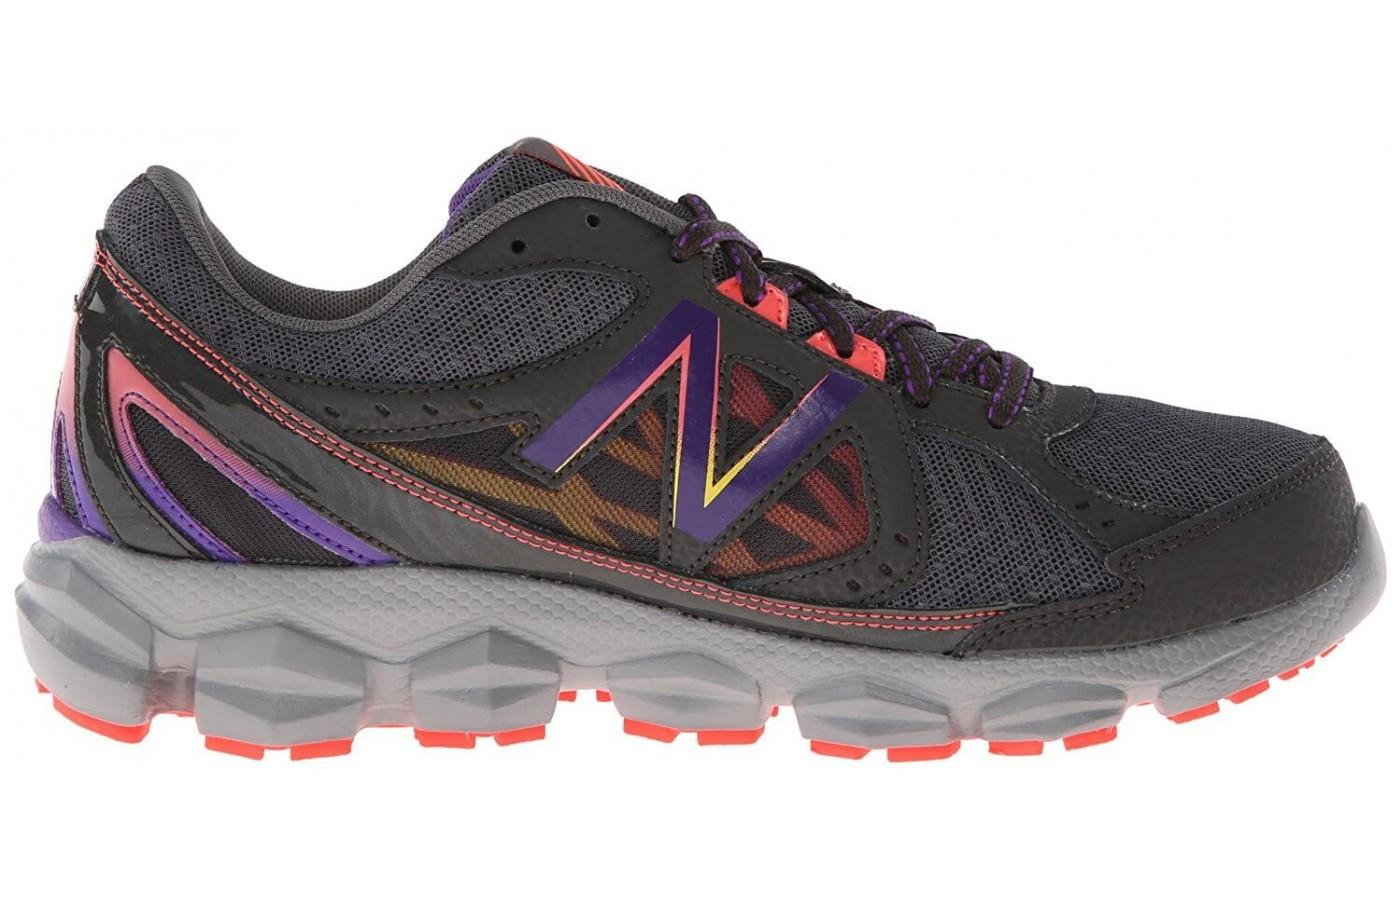 New Balance 750 v3 has a distinct profile